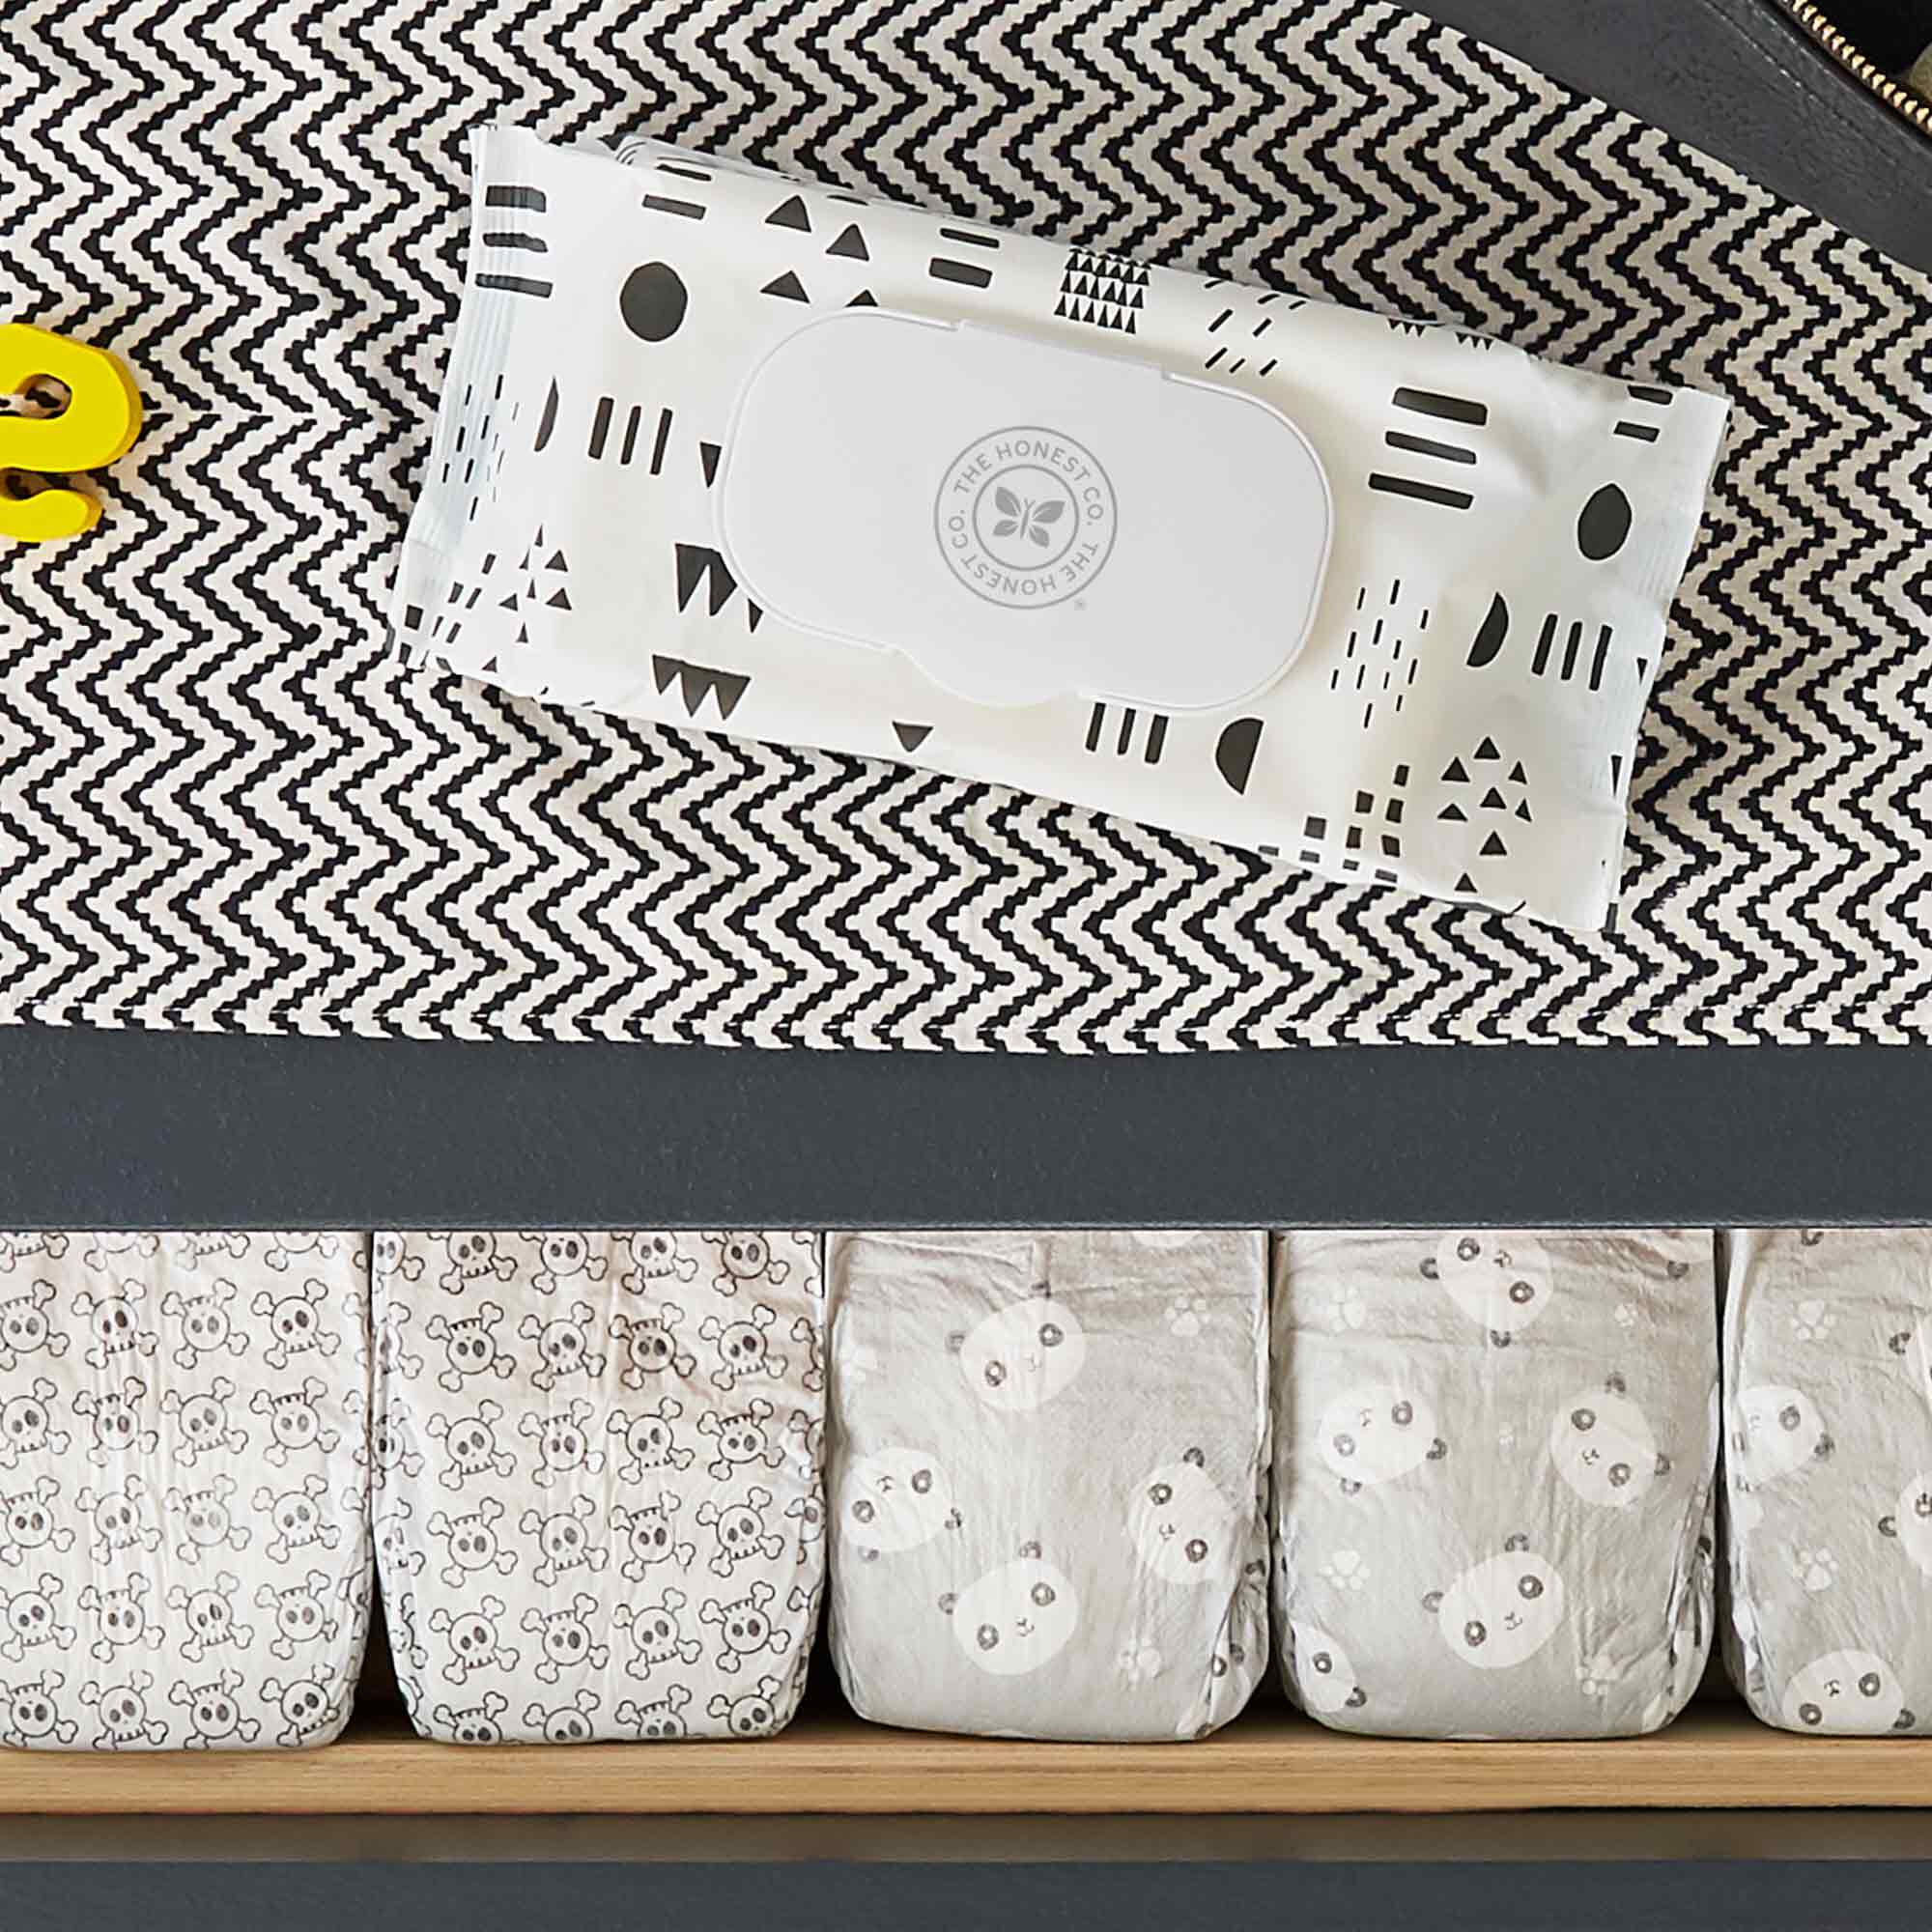 pattern play wipes on dresser